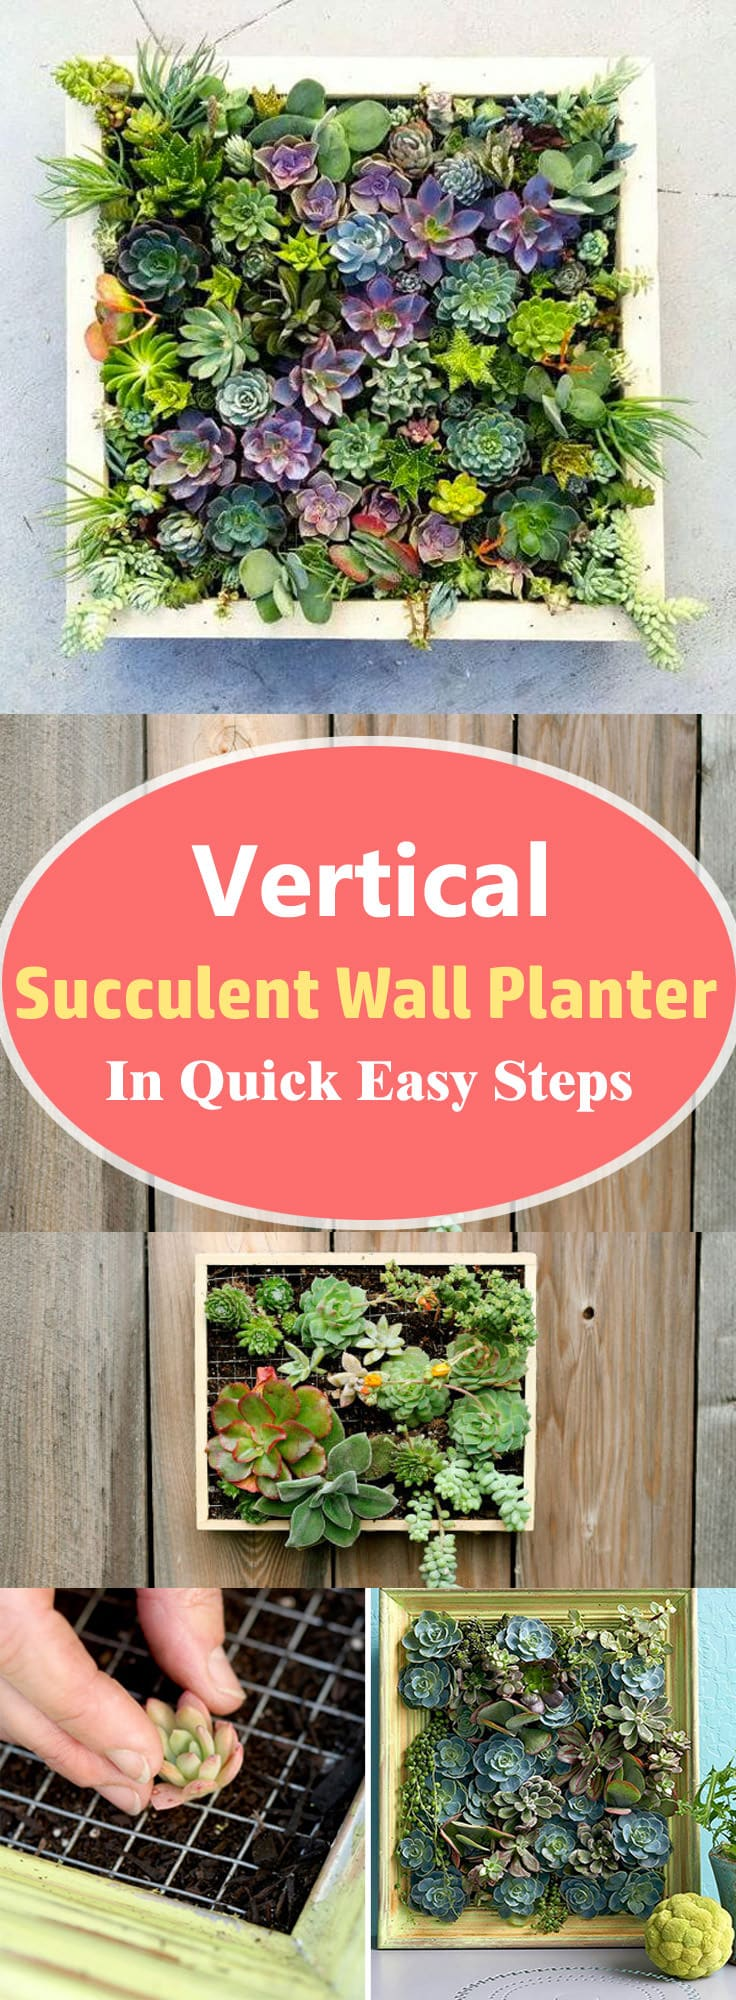 Vertical Succulent Wall Planter In Quick Easy Steps | DIY Succulent ...